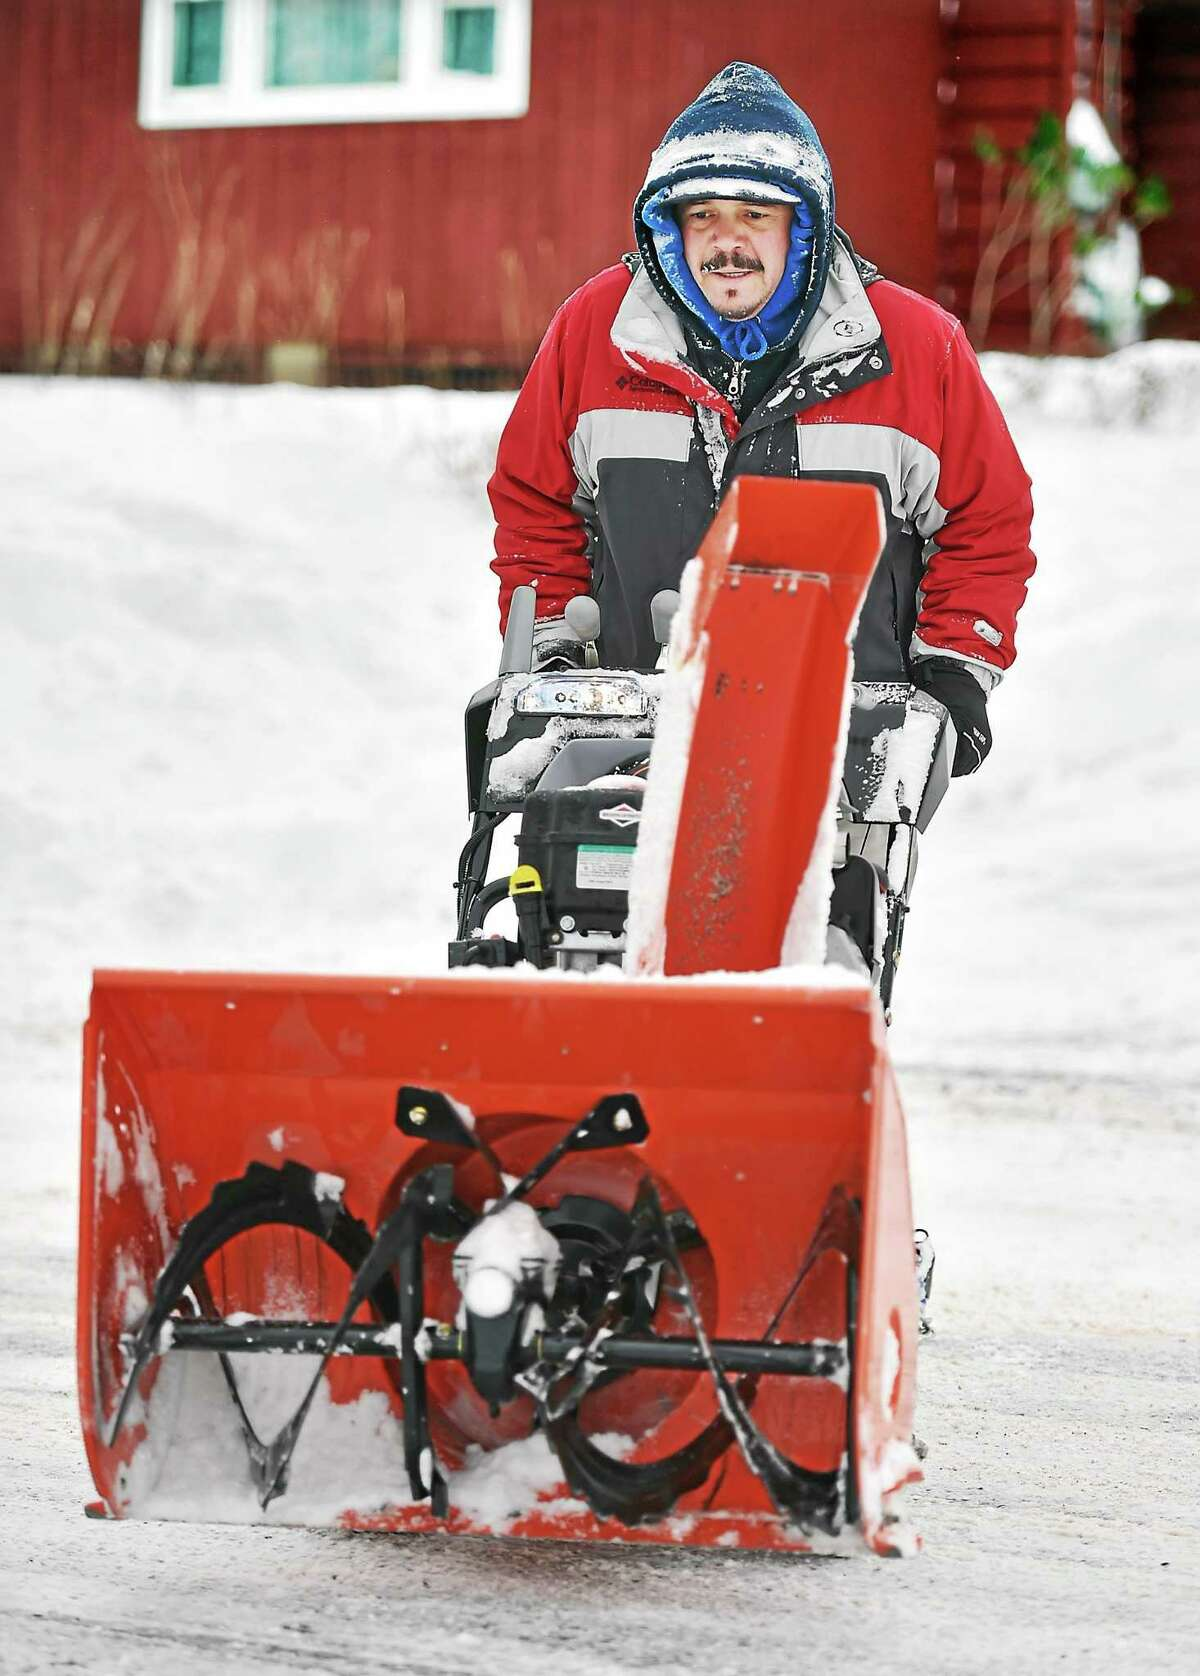 (Catherine Avalone - New Haven Register) Middletown resident Hector Adorno heads back home after clearing snow from a neighbor's driveway on Highland Avenue in Middletown, Tuesday, January 27, 2015 .